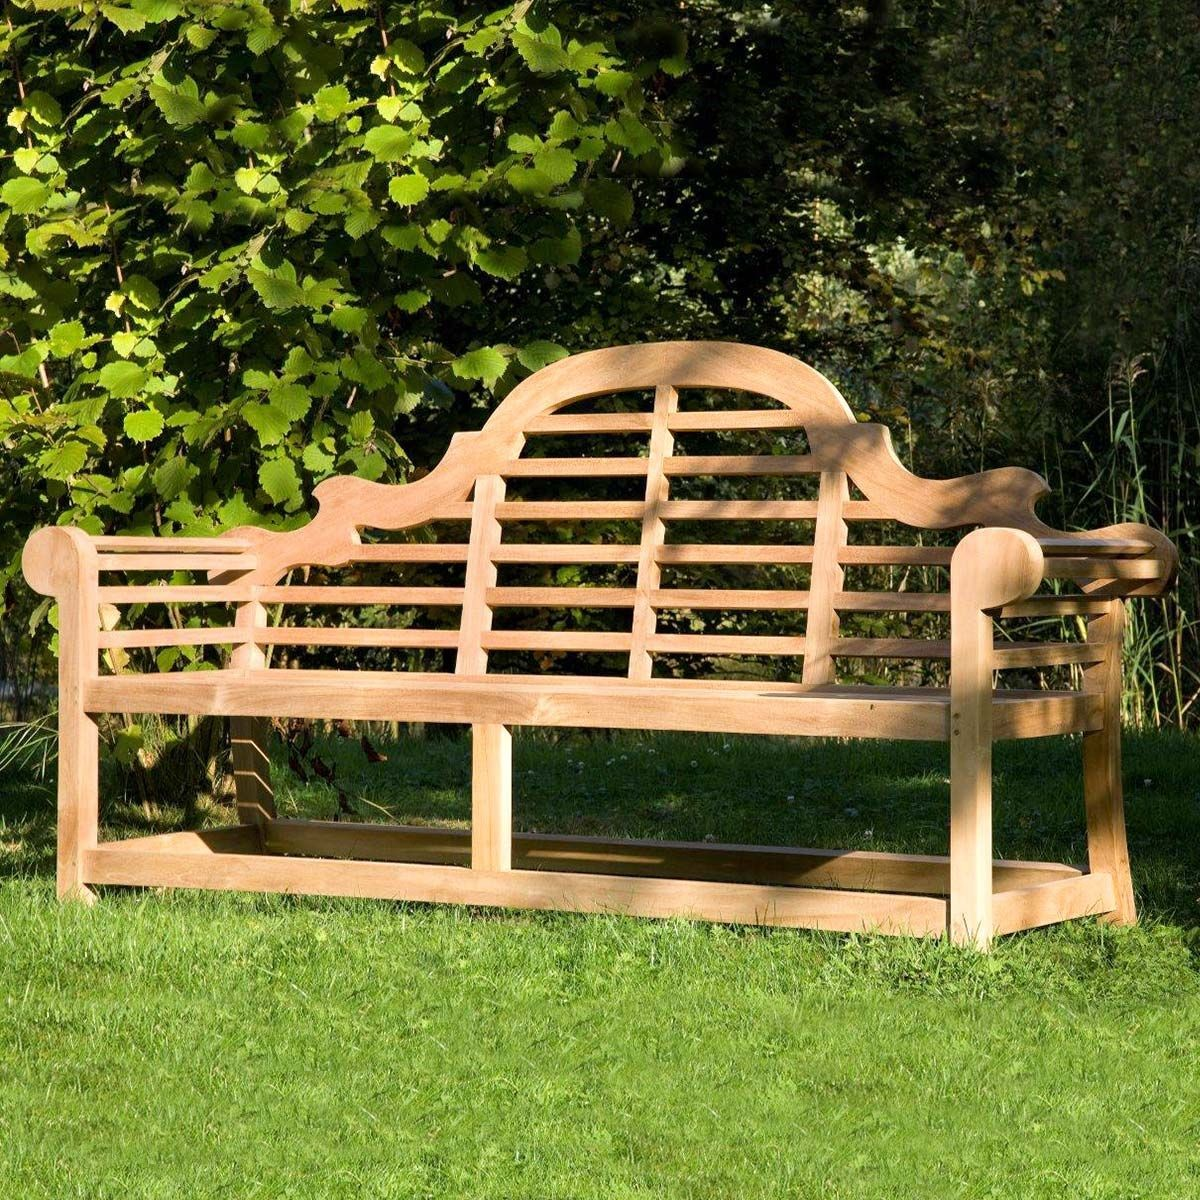 Banc de jardin 3 places en teck grade A, Bilbao | Products ...